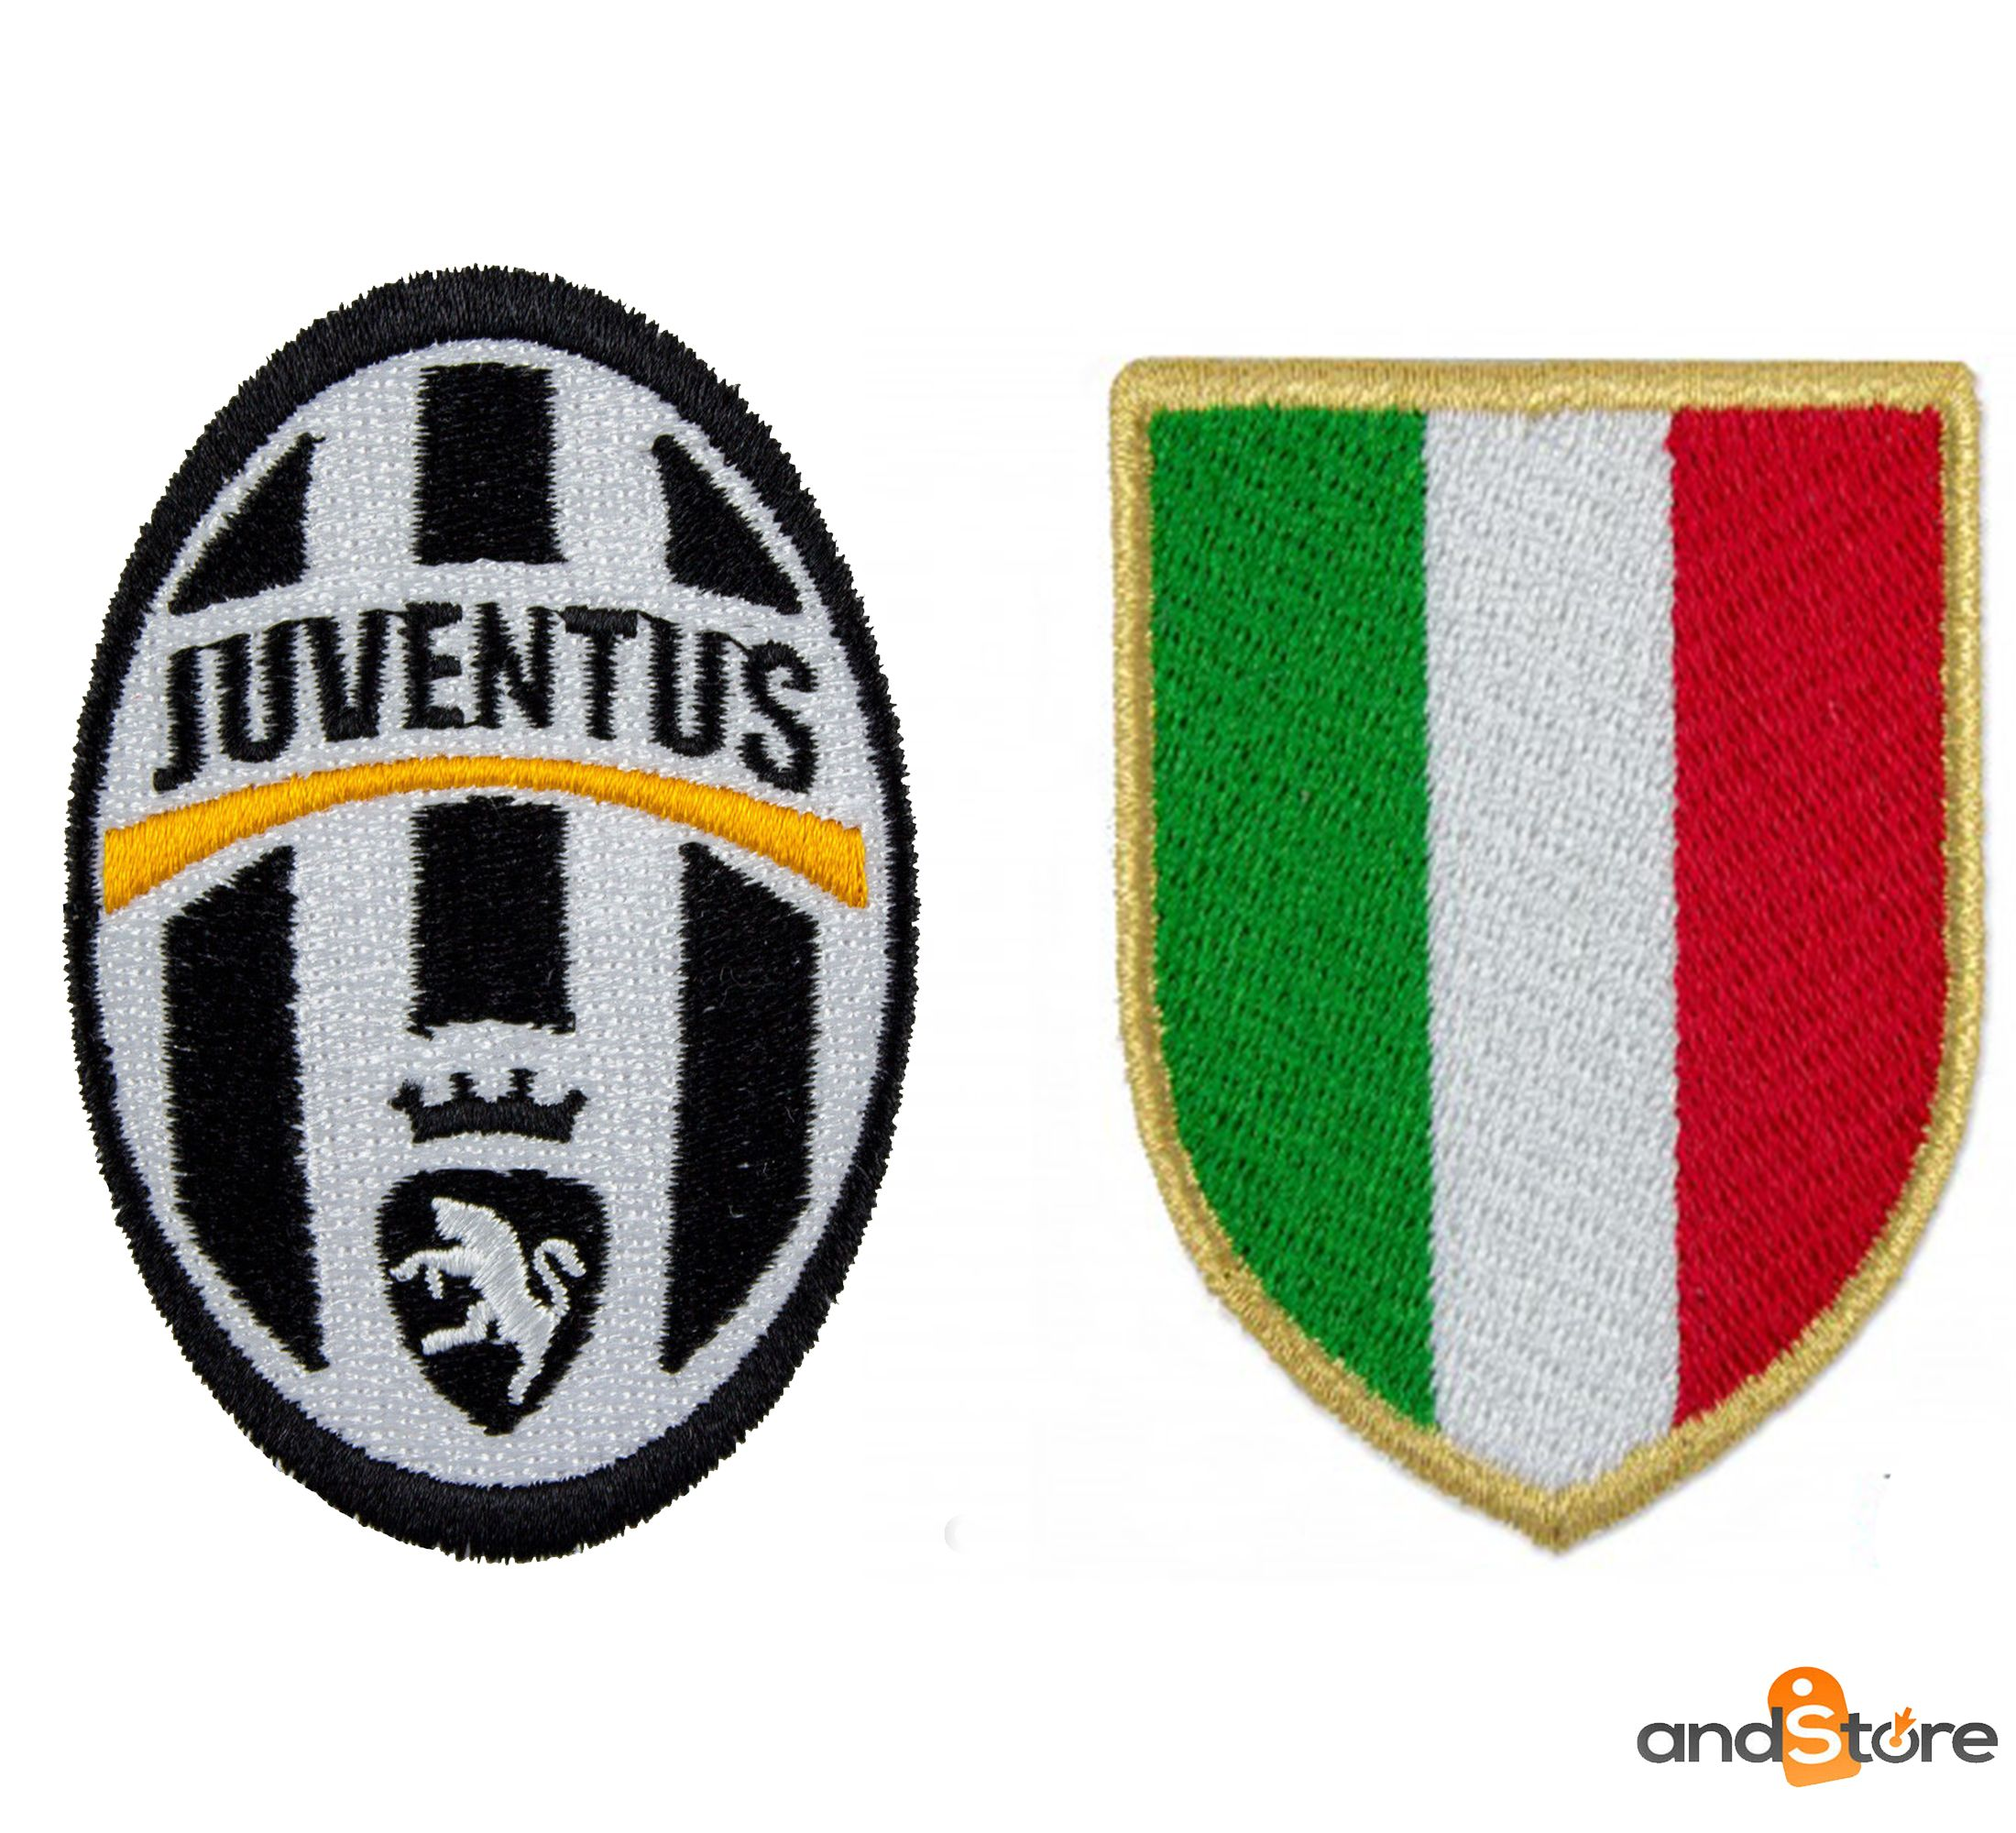 Patch scudetto serie a italia